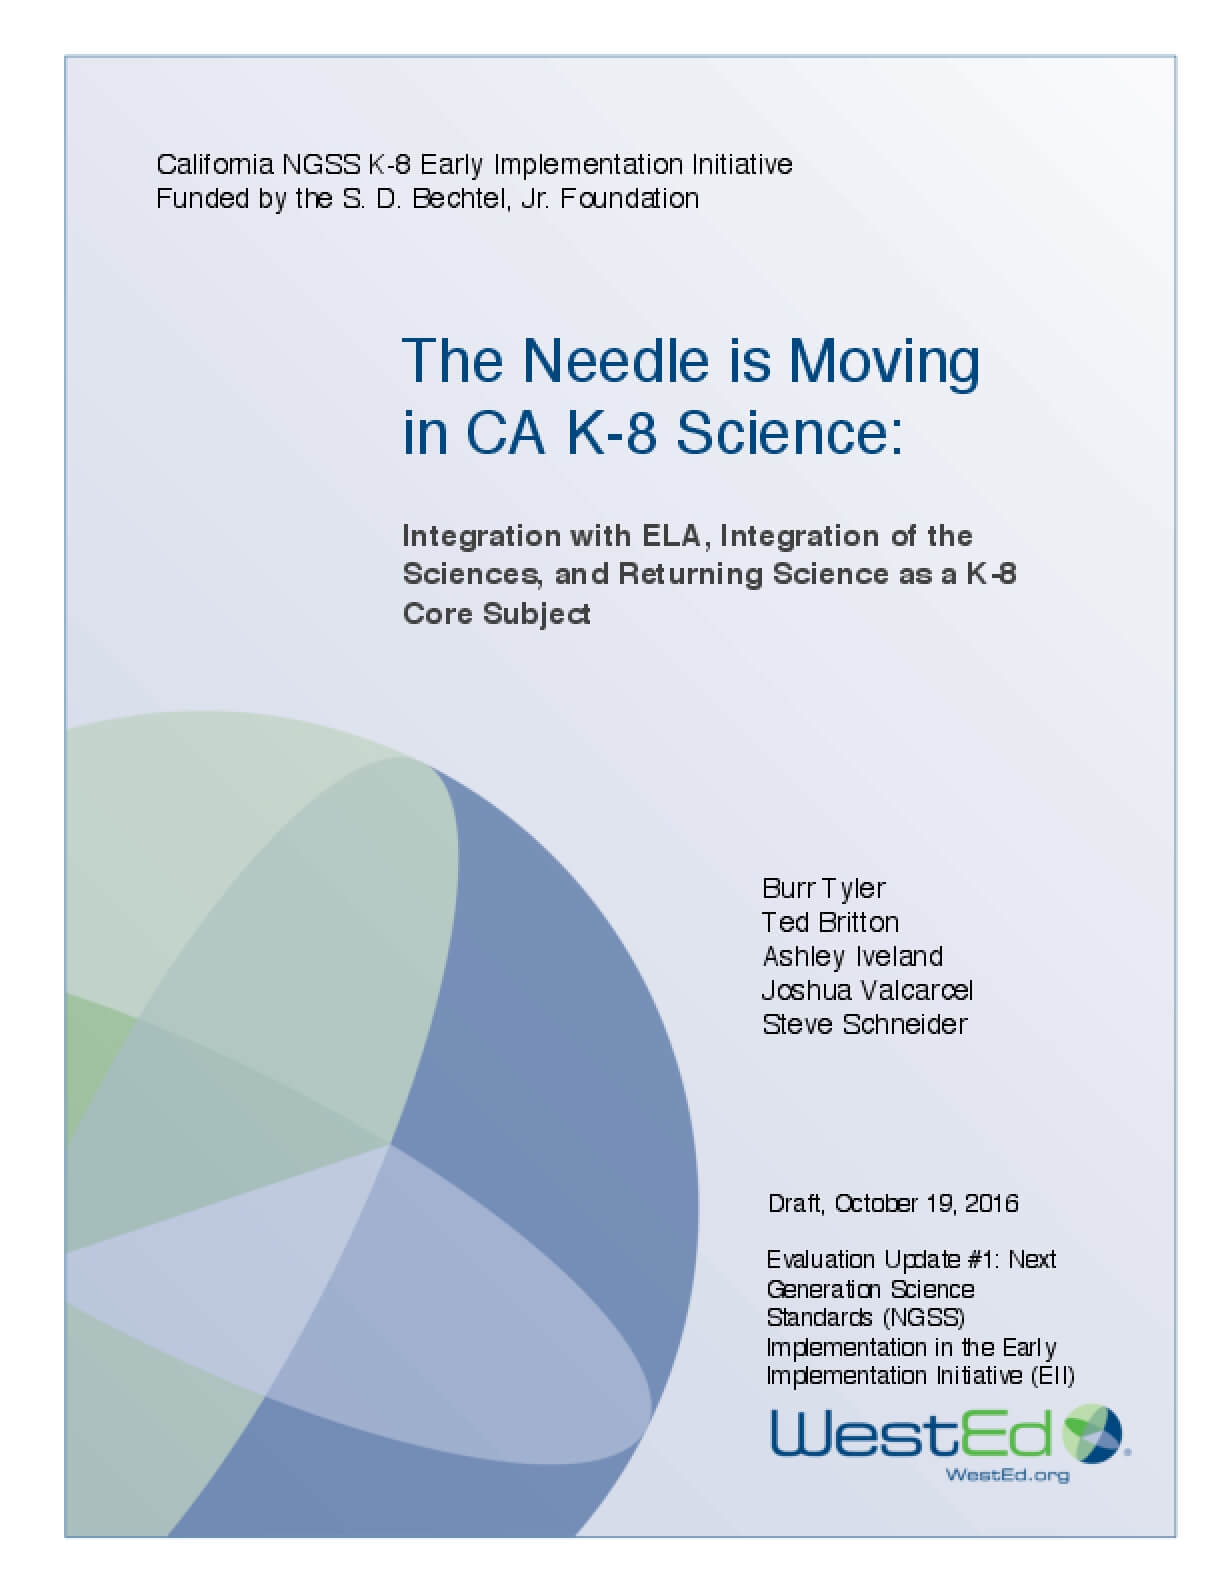 The Needle is Moving in CA K-8 Science: Integration with ELA, Integration of the Sciences, and Returning Science as a K-8 Core Subject